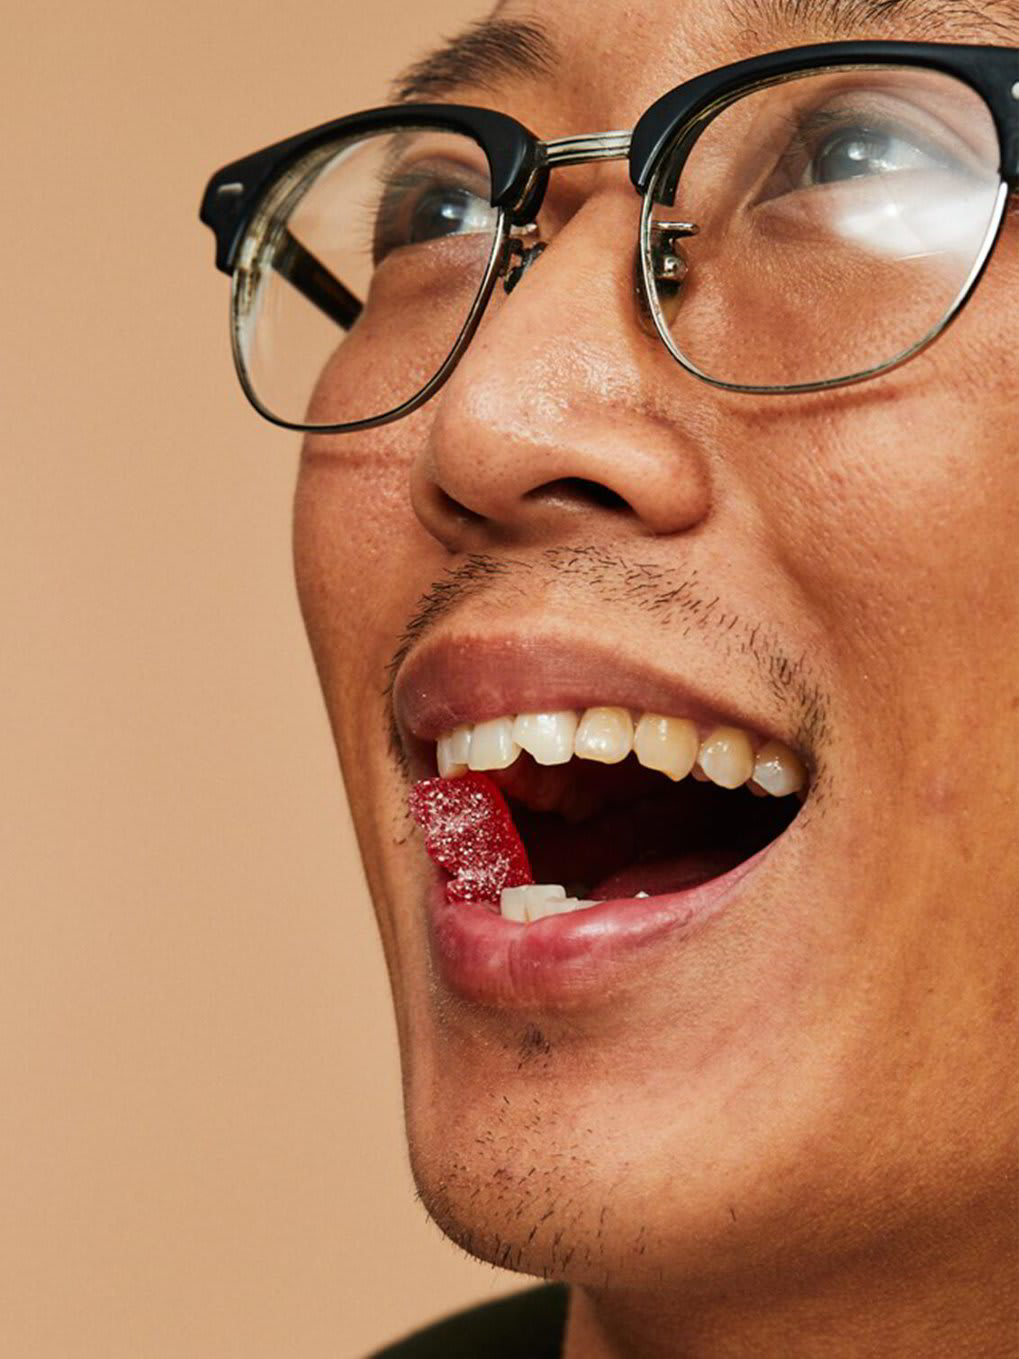 A man with a red gummy between his teeth